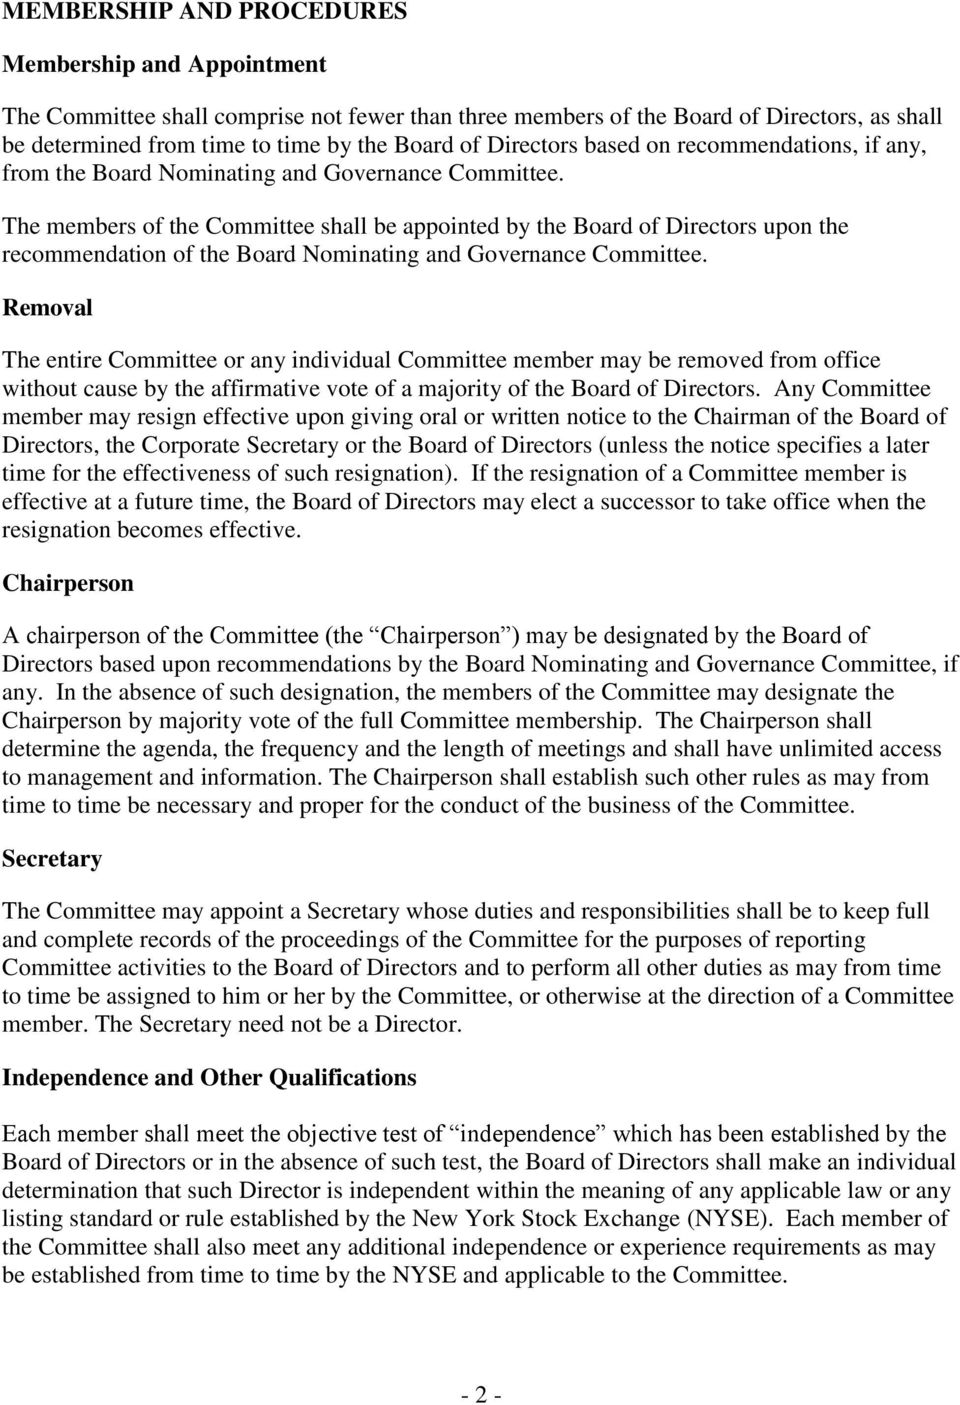 The members of the Committee shall be appointed by the Board of Directors upon the recommendation of the Board Nominating and Governance Committee.